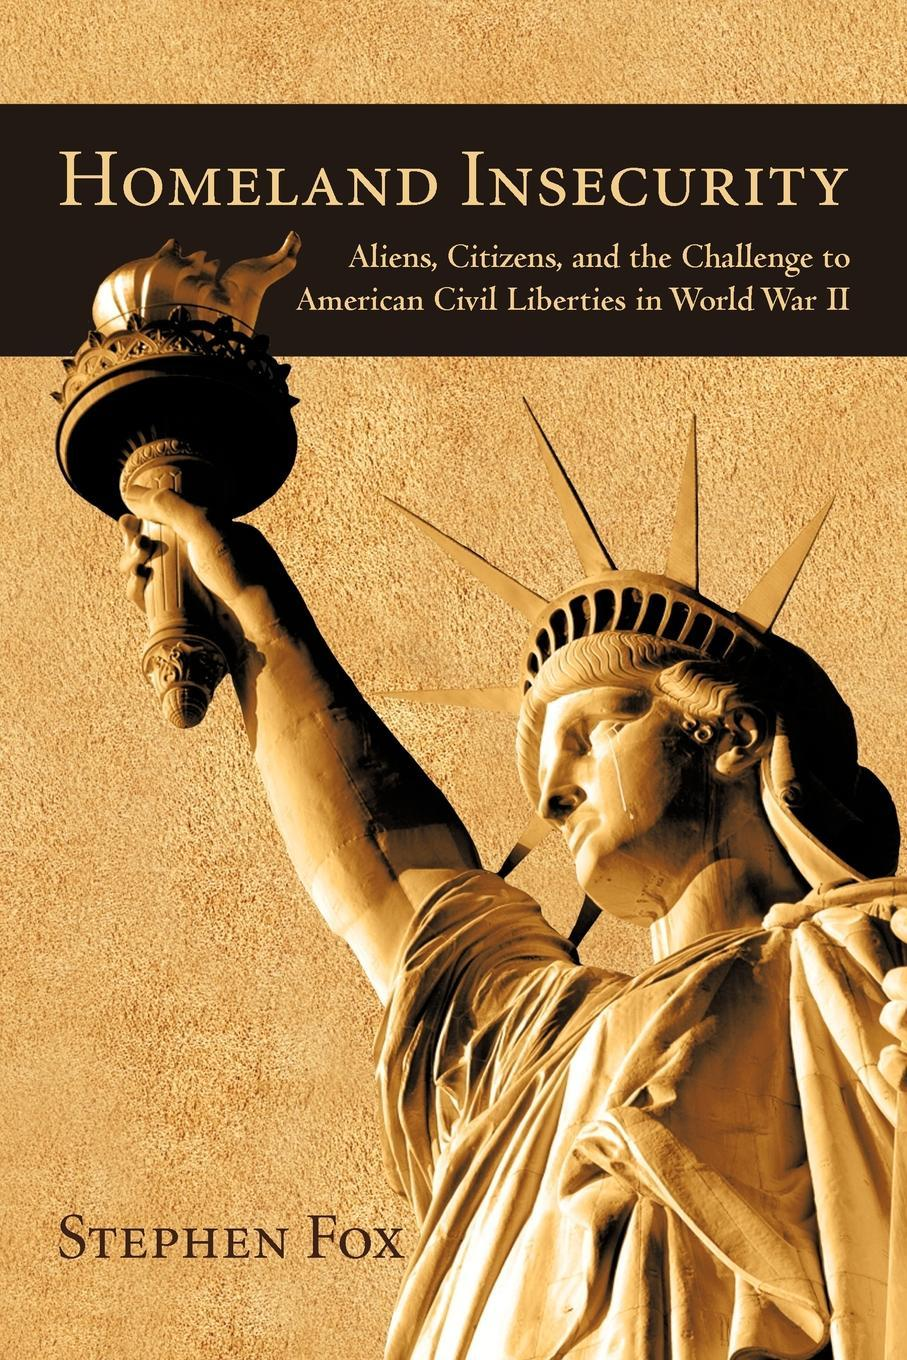 Homeland Insecurity: Aliens, Citizens, and the Challenge to American Civil Liberties in World War II EB9781440155567